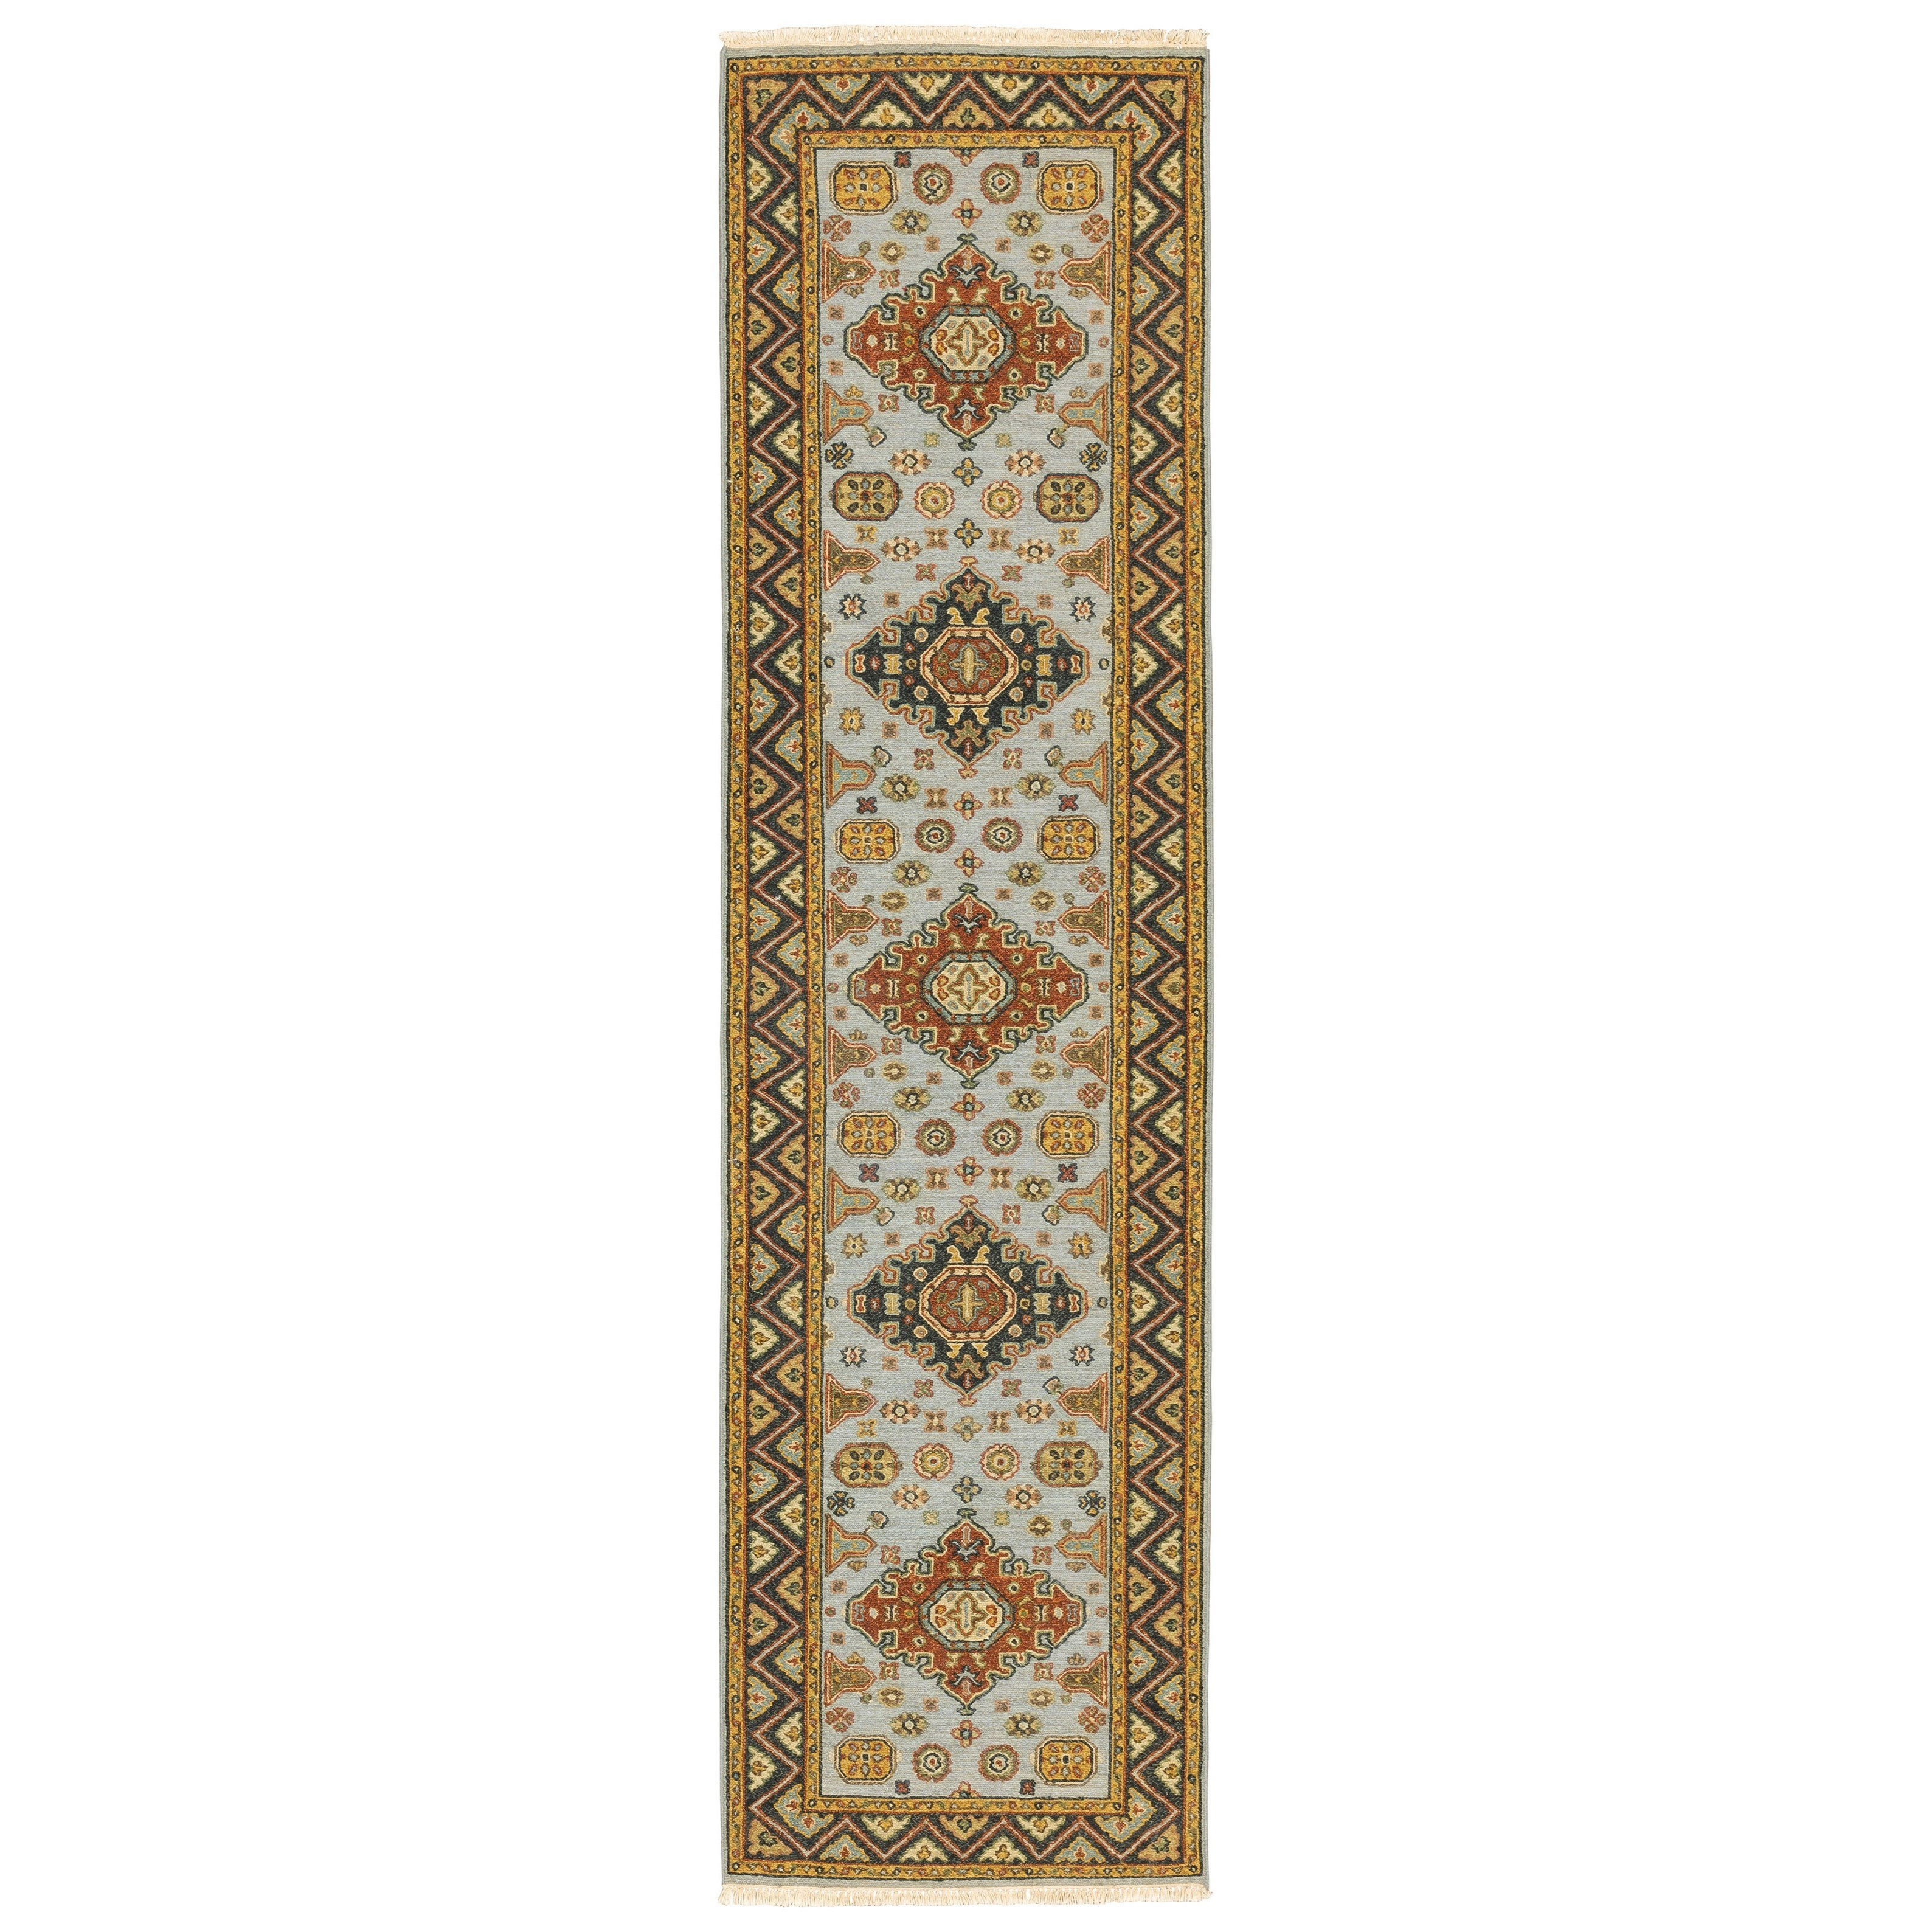 "Angora 2' 6"" X 10' Runner Rug by Oriental Weavers at Godby Home Furnishings"